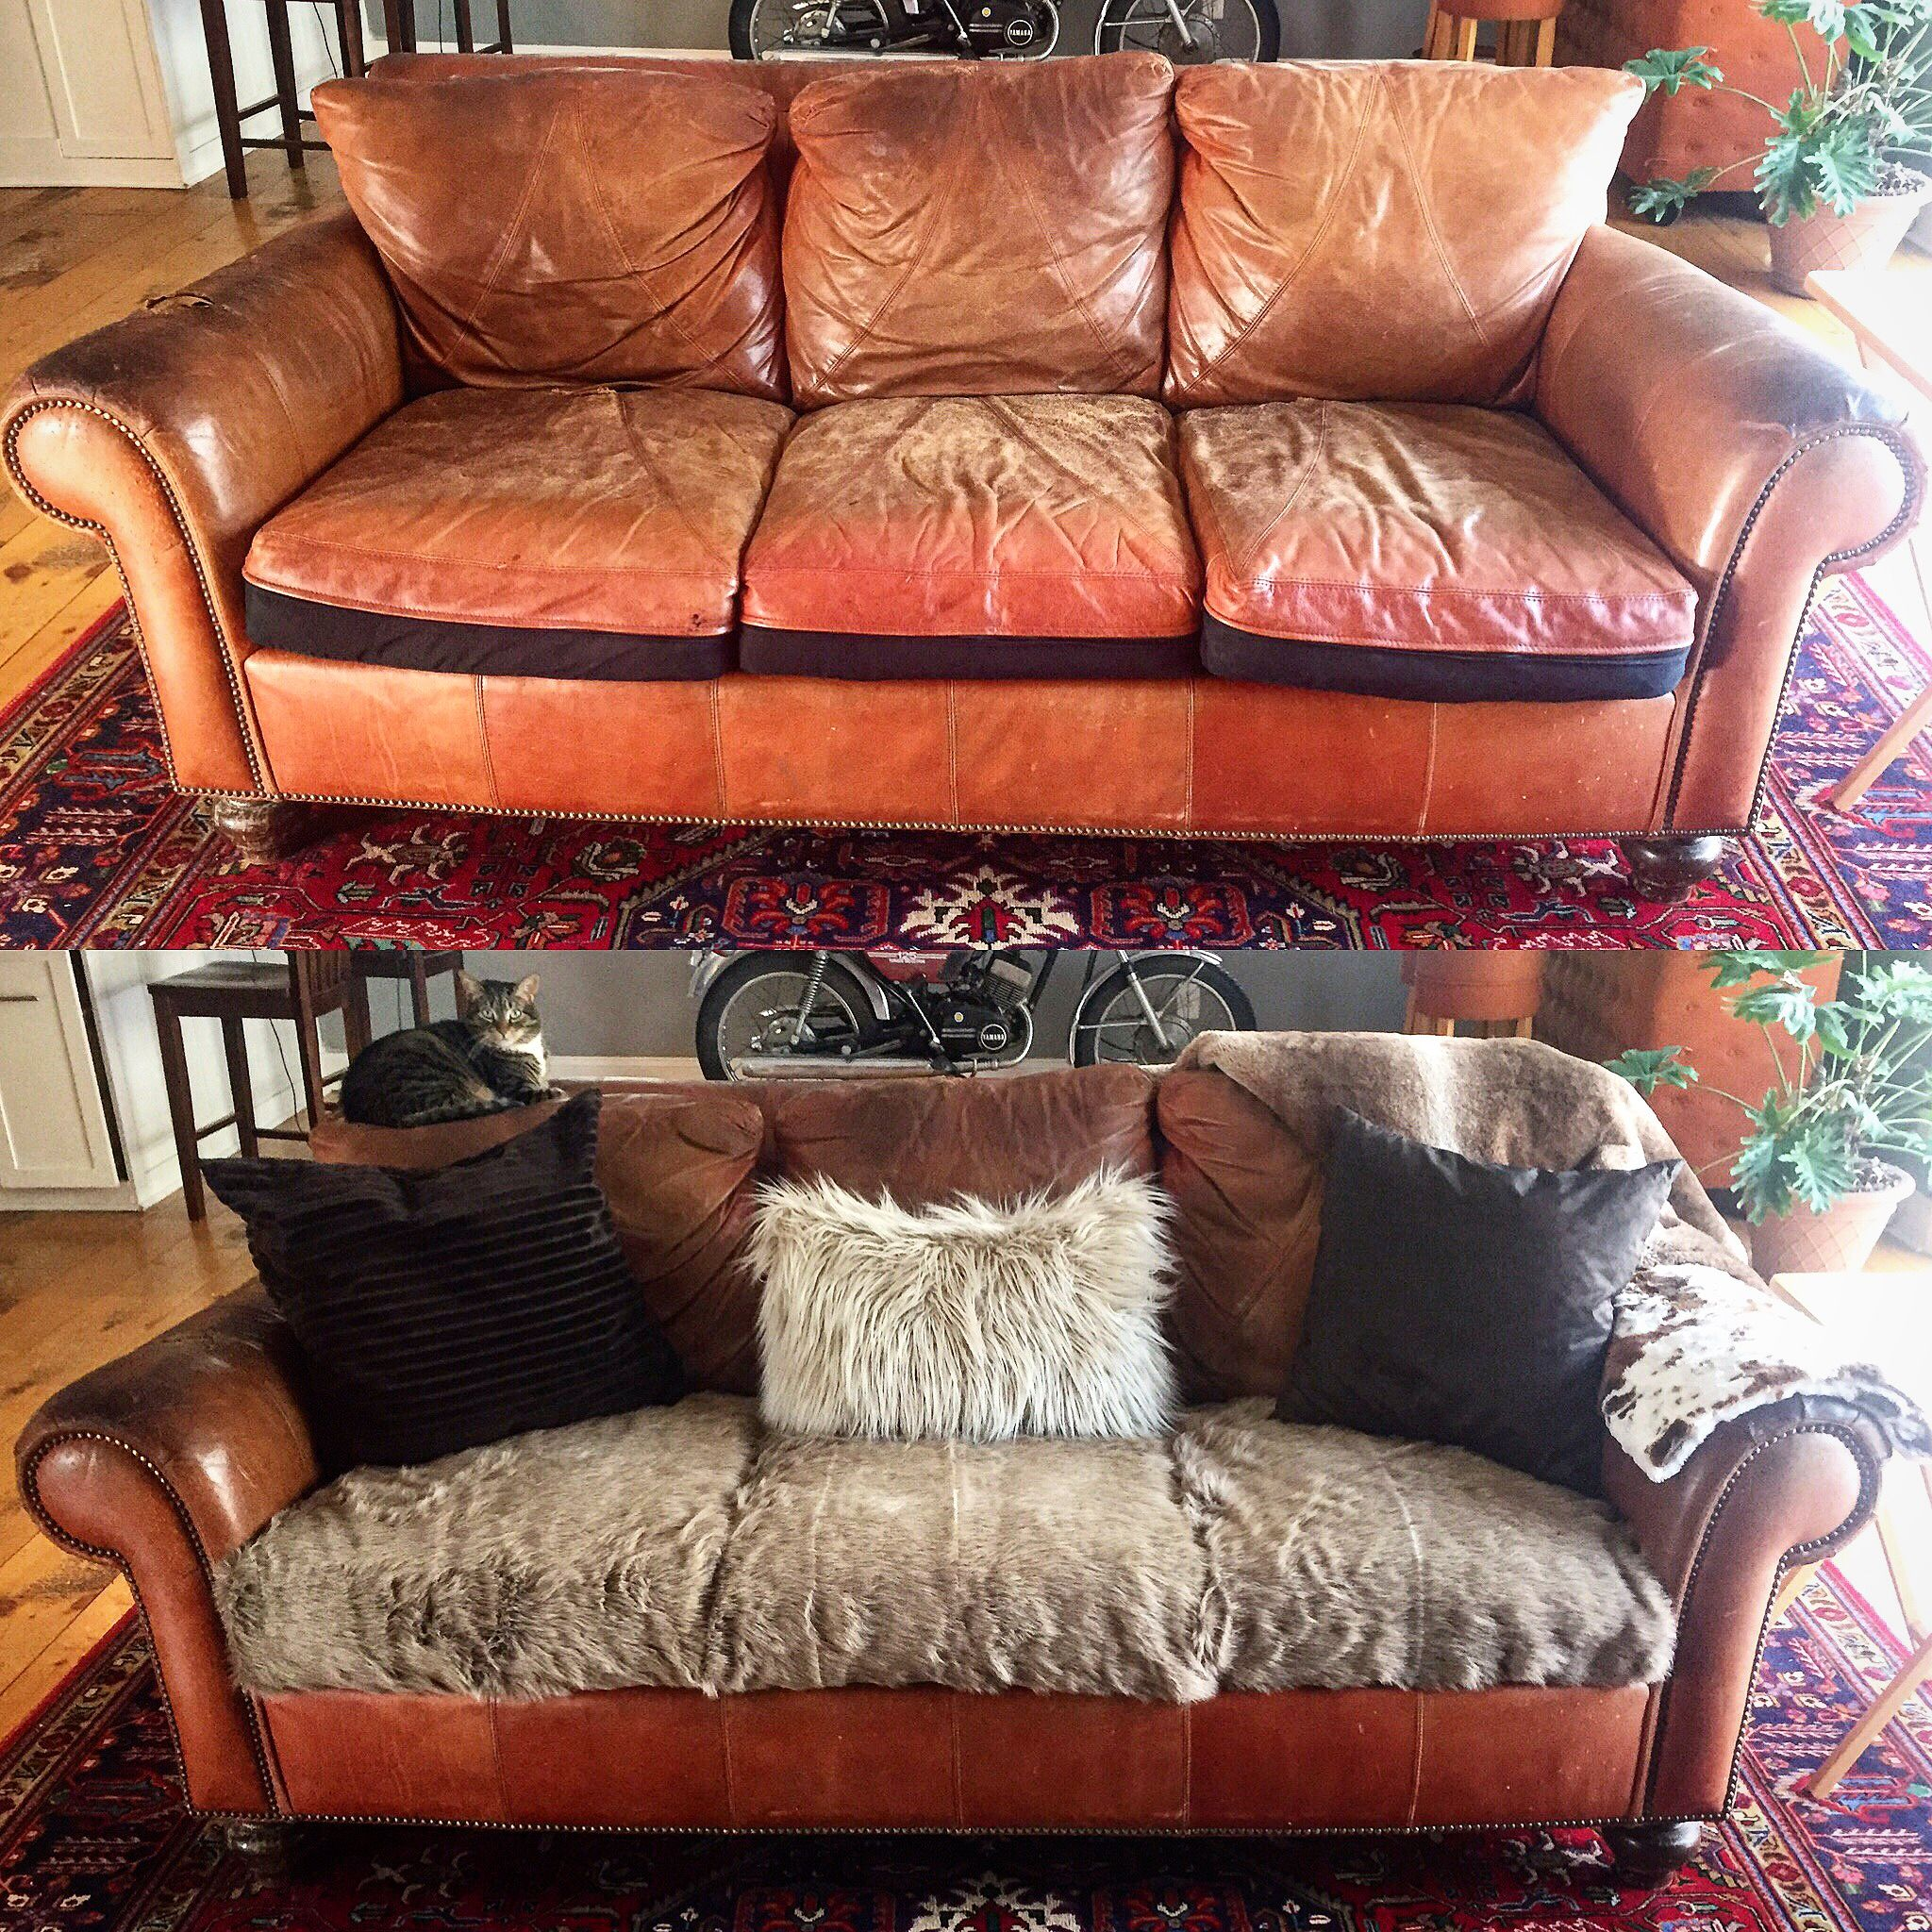 Couch Makeover Recovered Couch Cushions Vintage Leather Couch